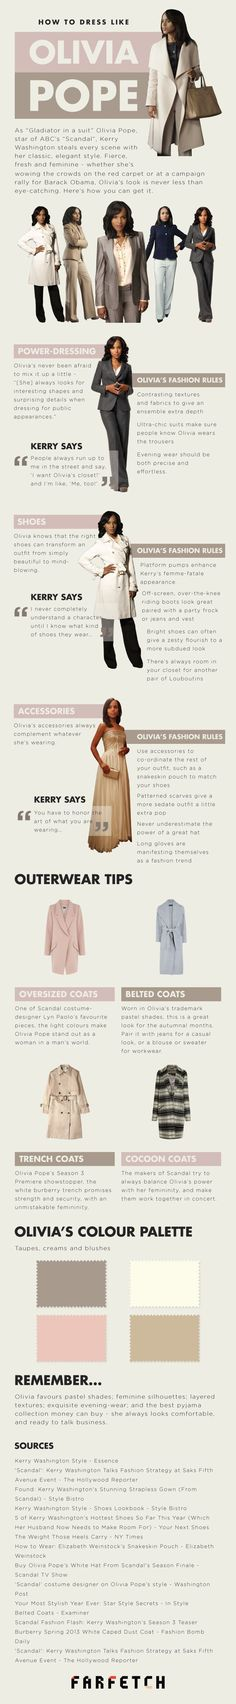 How to dress like Olivia Pope - can I just have her coat and jacket collection please? @anna_merline @raye90 @bushrn